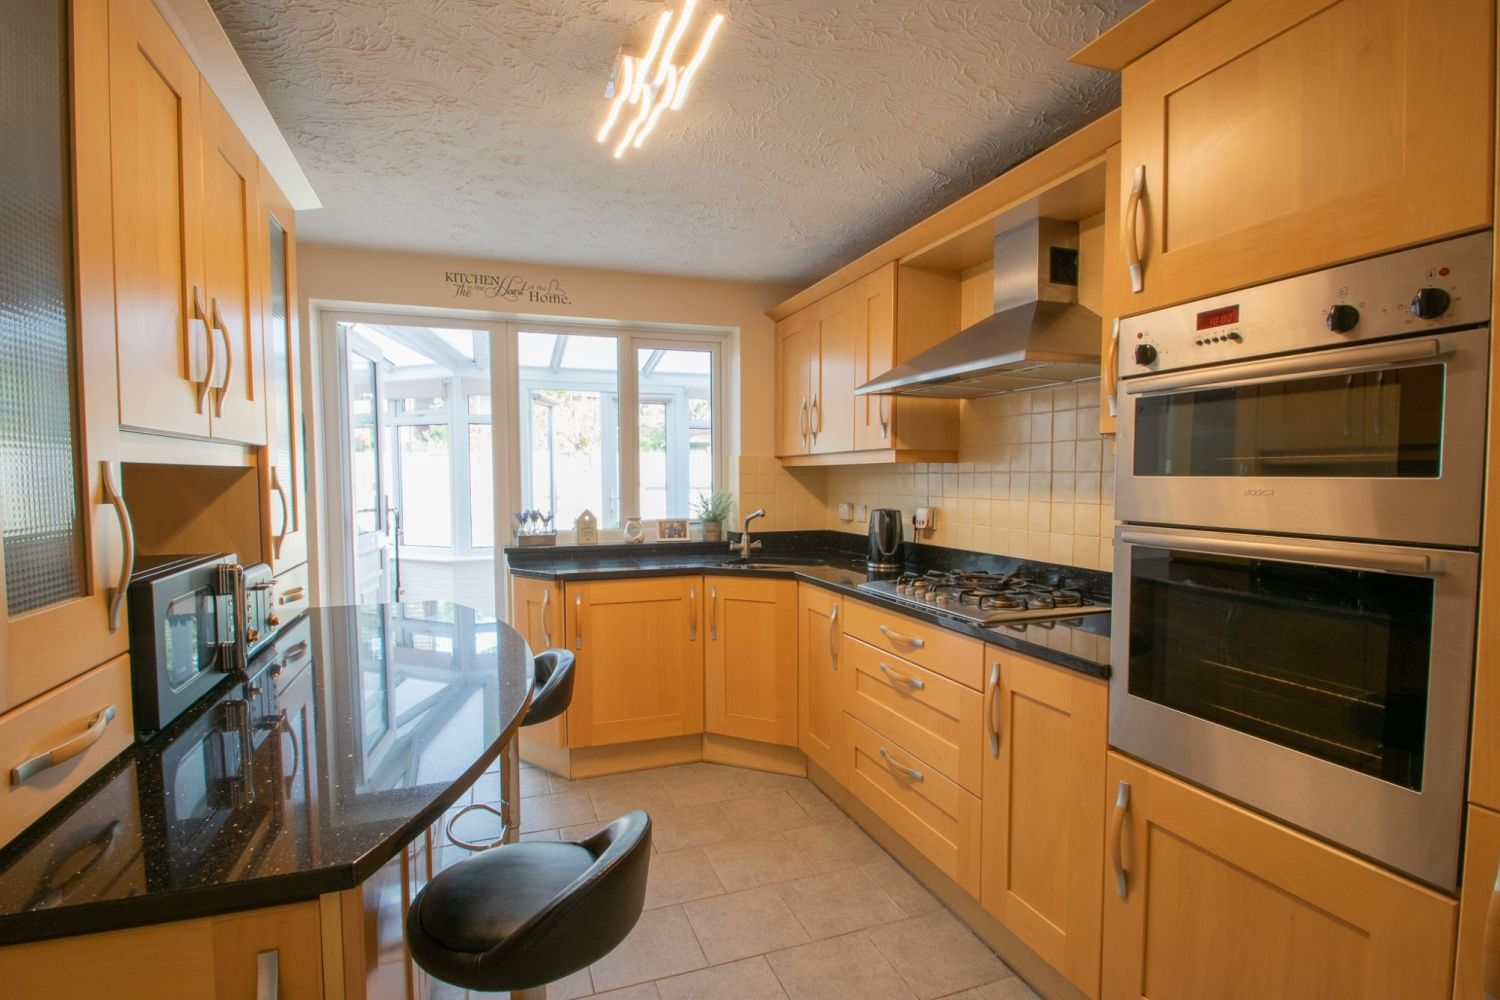 3 bed detached for sale in Batchelor Close, Amblecote  - Property Image 5